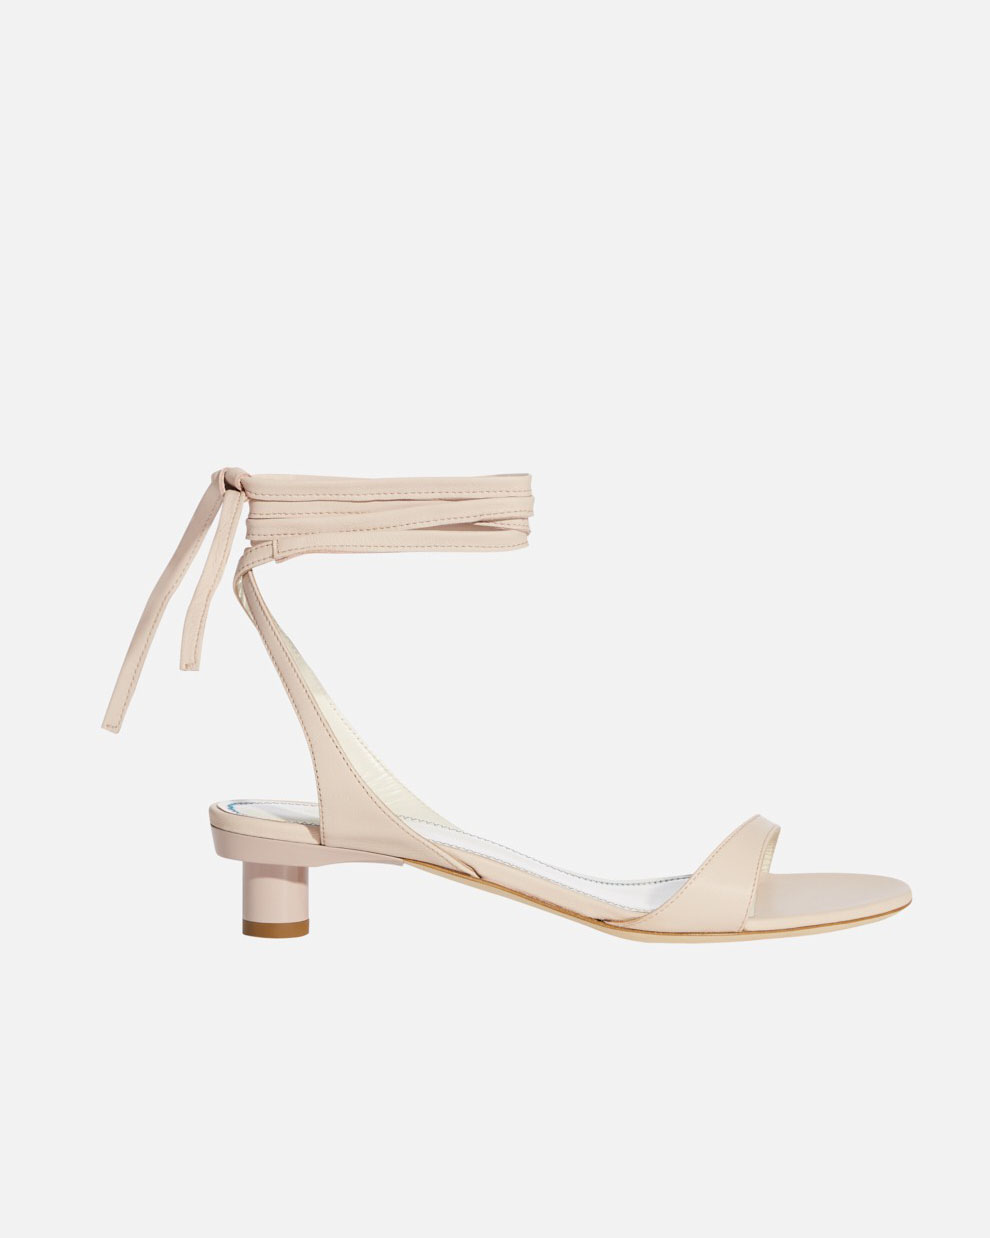 ankle-tie leather sandals